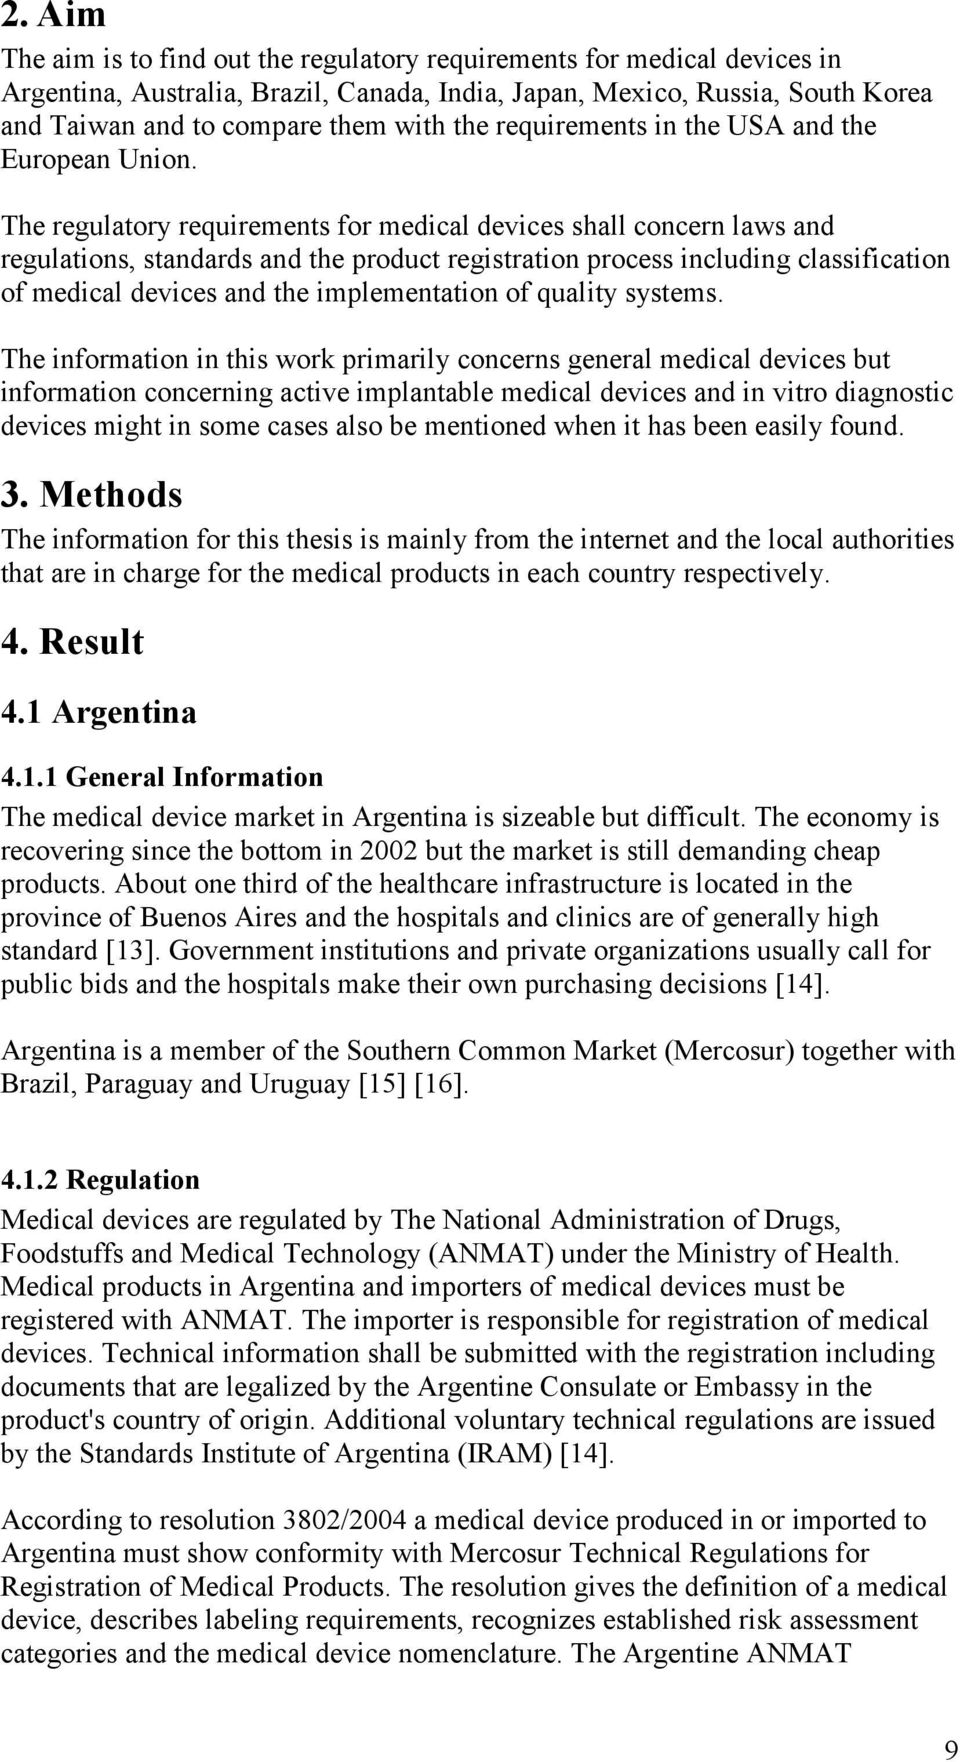 Global Regulatory Requirements for Medical Devices - PDF